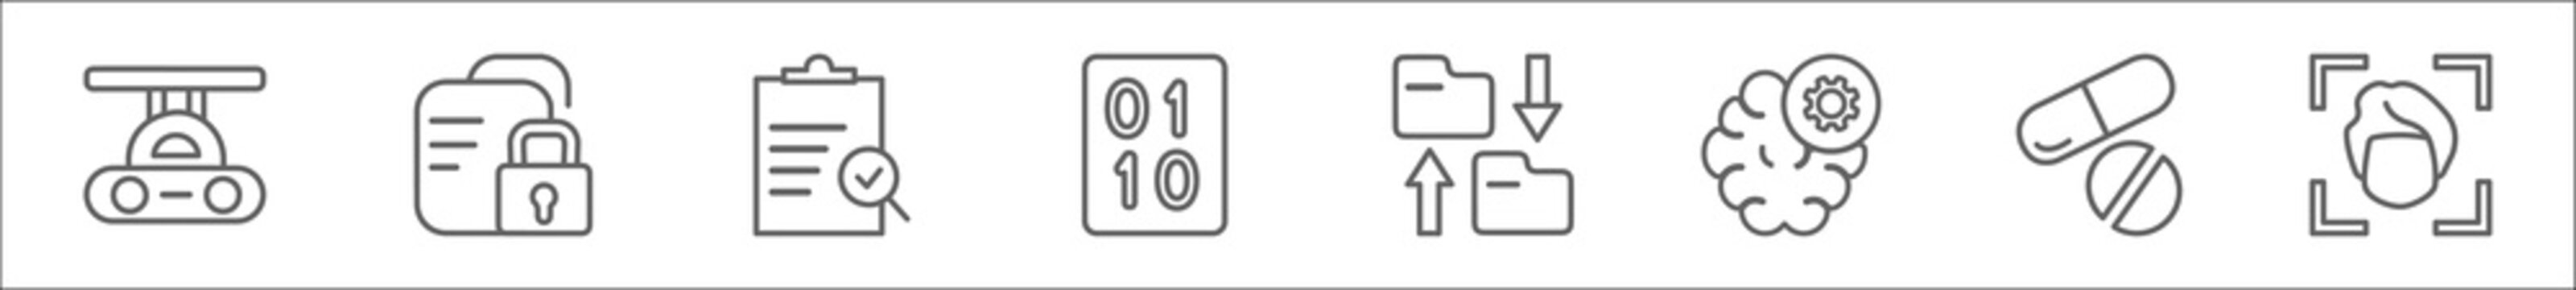 outline set of artificial intellegence line icons. linear vector icons such as high speed tube, secure data, evaluation, binary, file transfer, unsupervised learning, medicine, face recognition